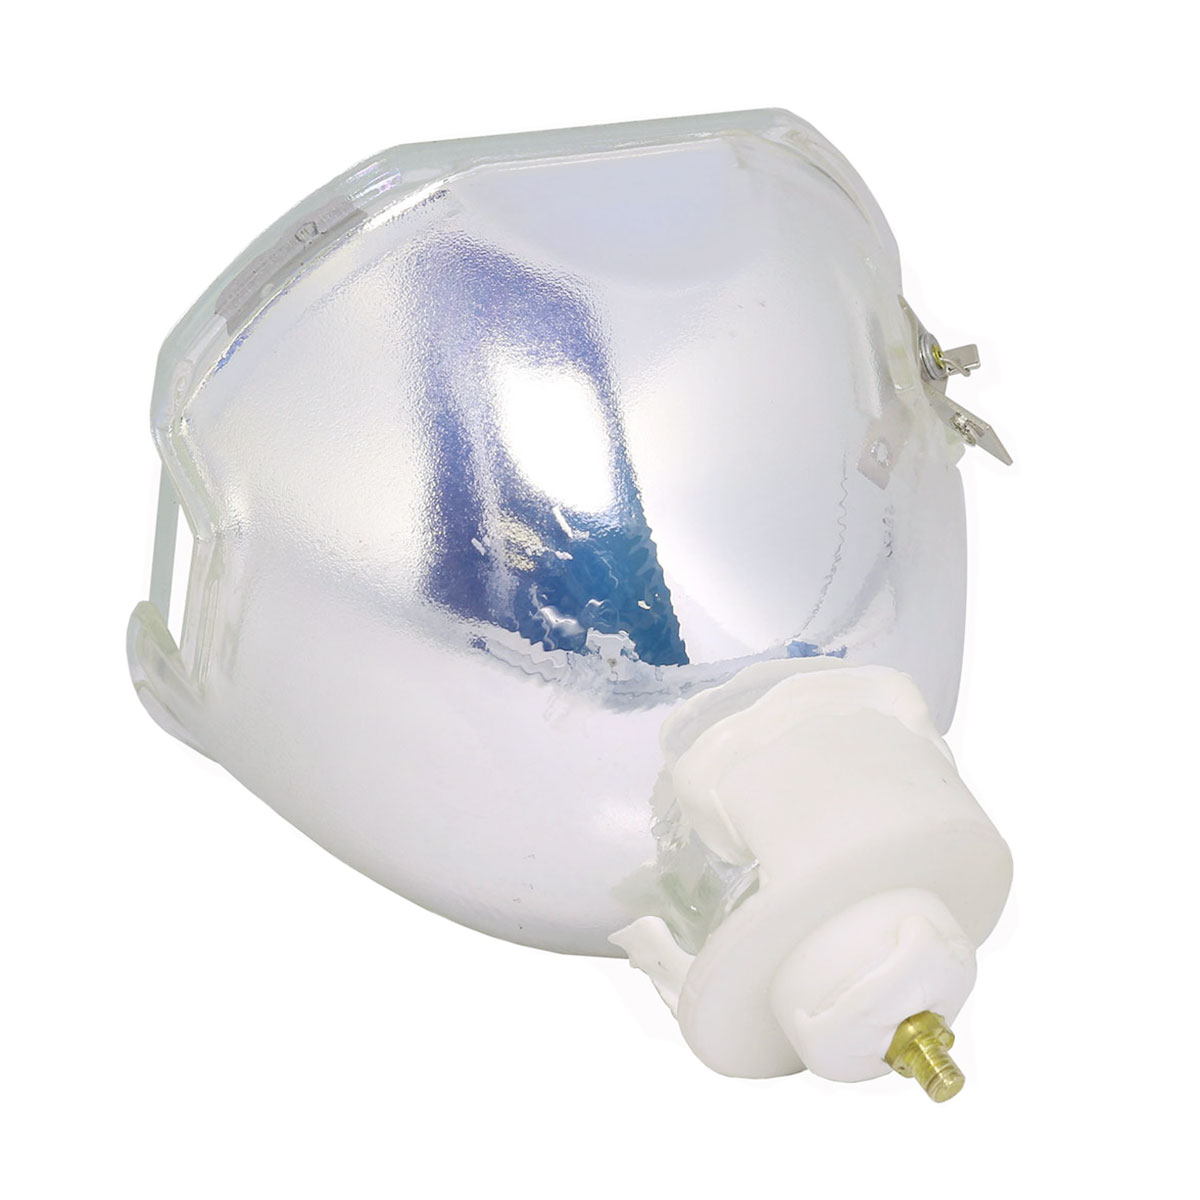 Lutema Economy Bulb for Panasonic TH-DW7000-K (Single Lamp) Projector (Lamp with Housing) - image 2 de 5